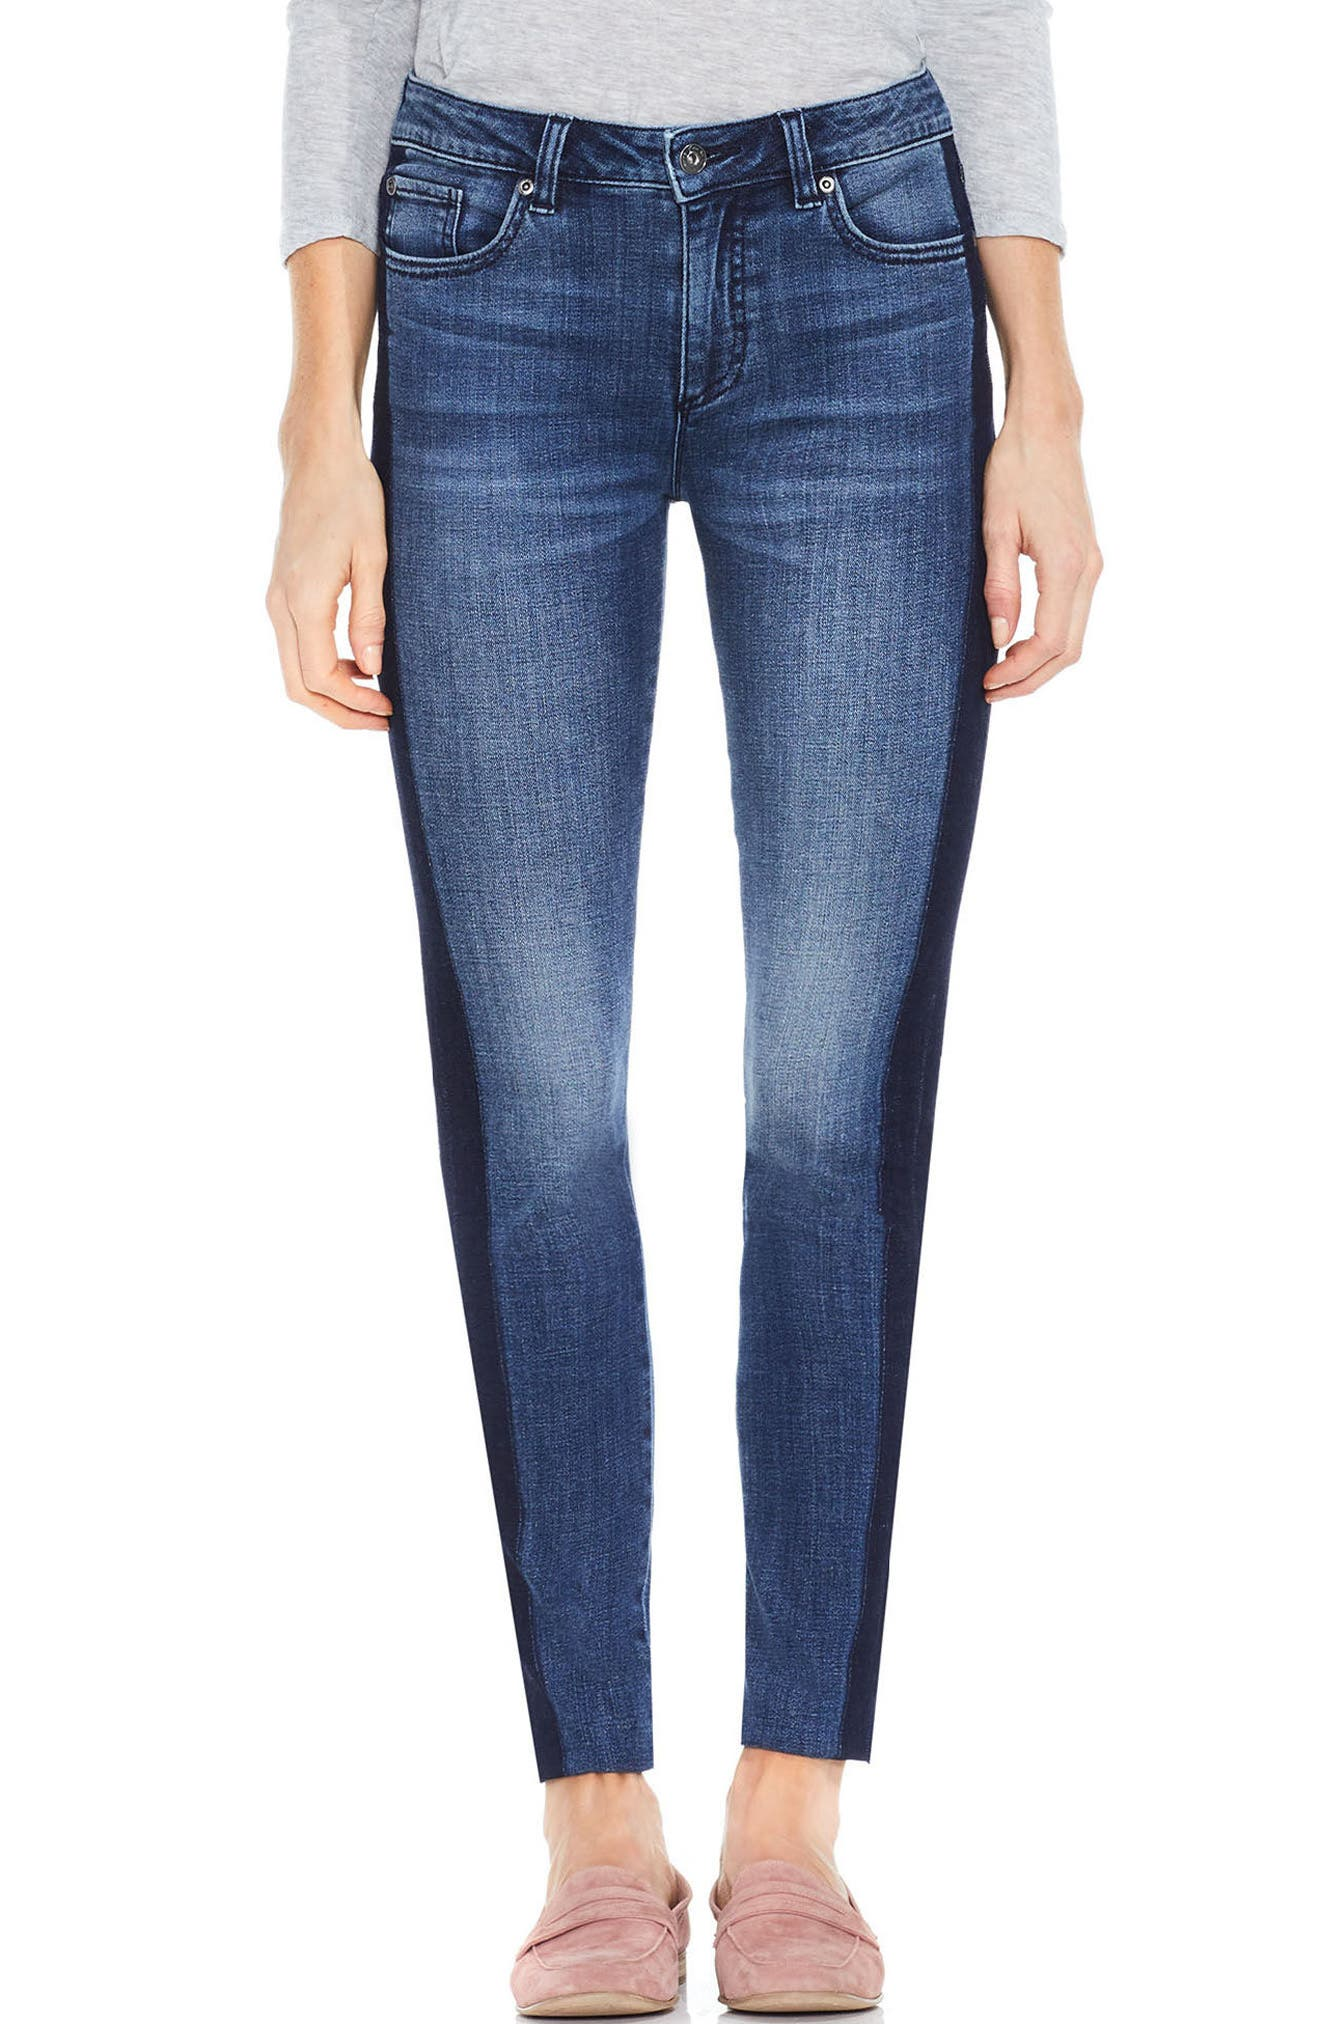 Two by Vince Camuto Two-Tone Skinny Jeans,                             Main thumbnail 1, color,                             INDIGO SHADOW